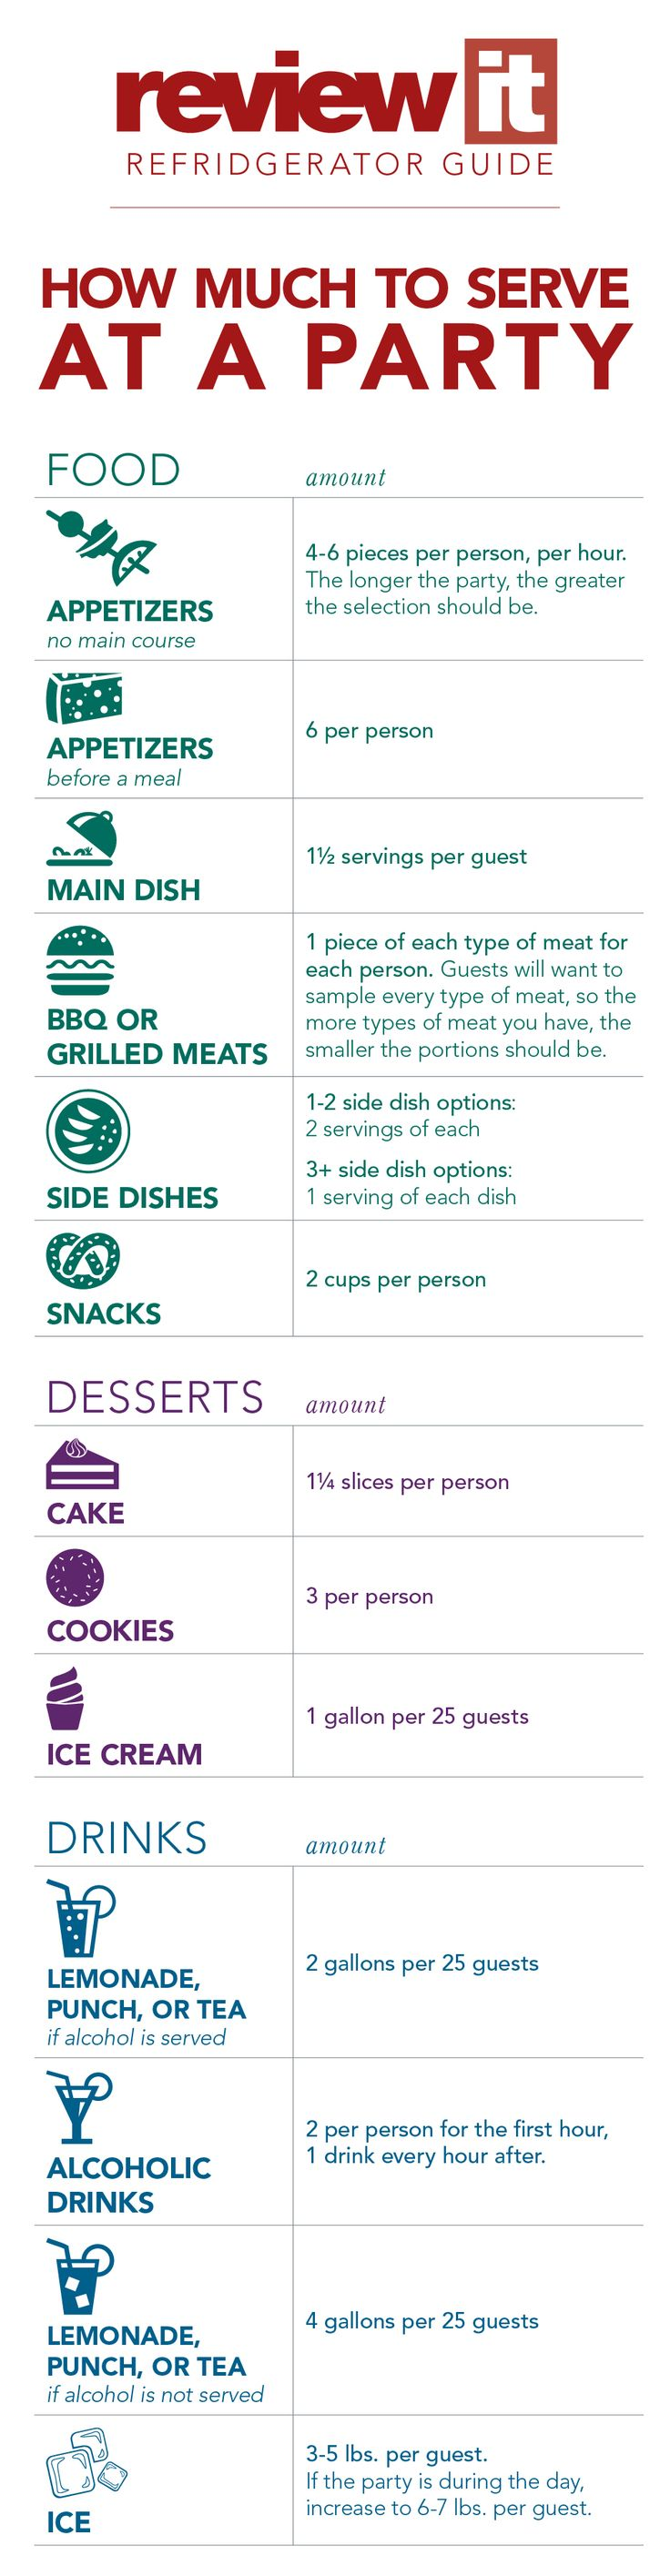 How much food to serve at a party - for more tips and tricks to planning party food